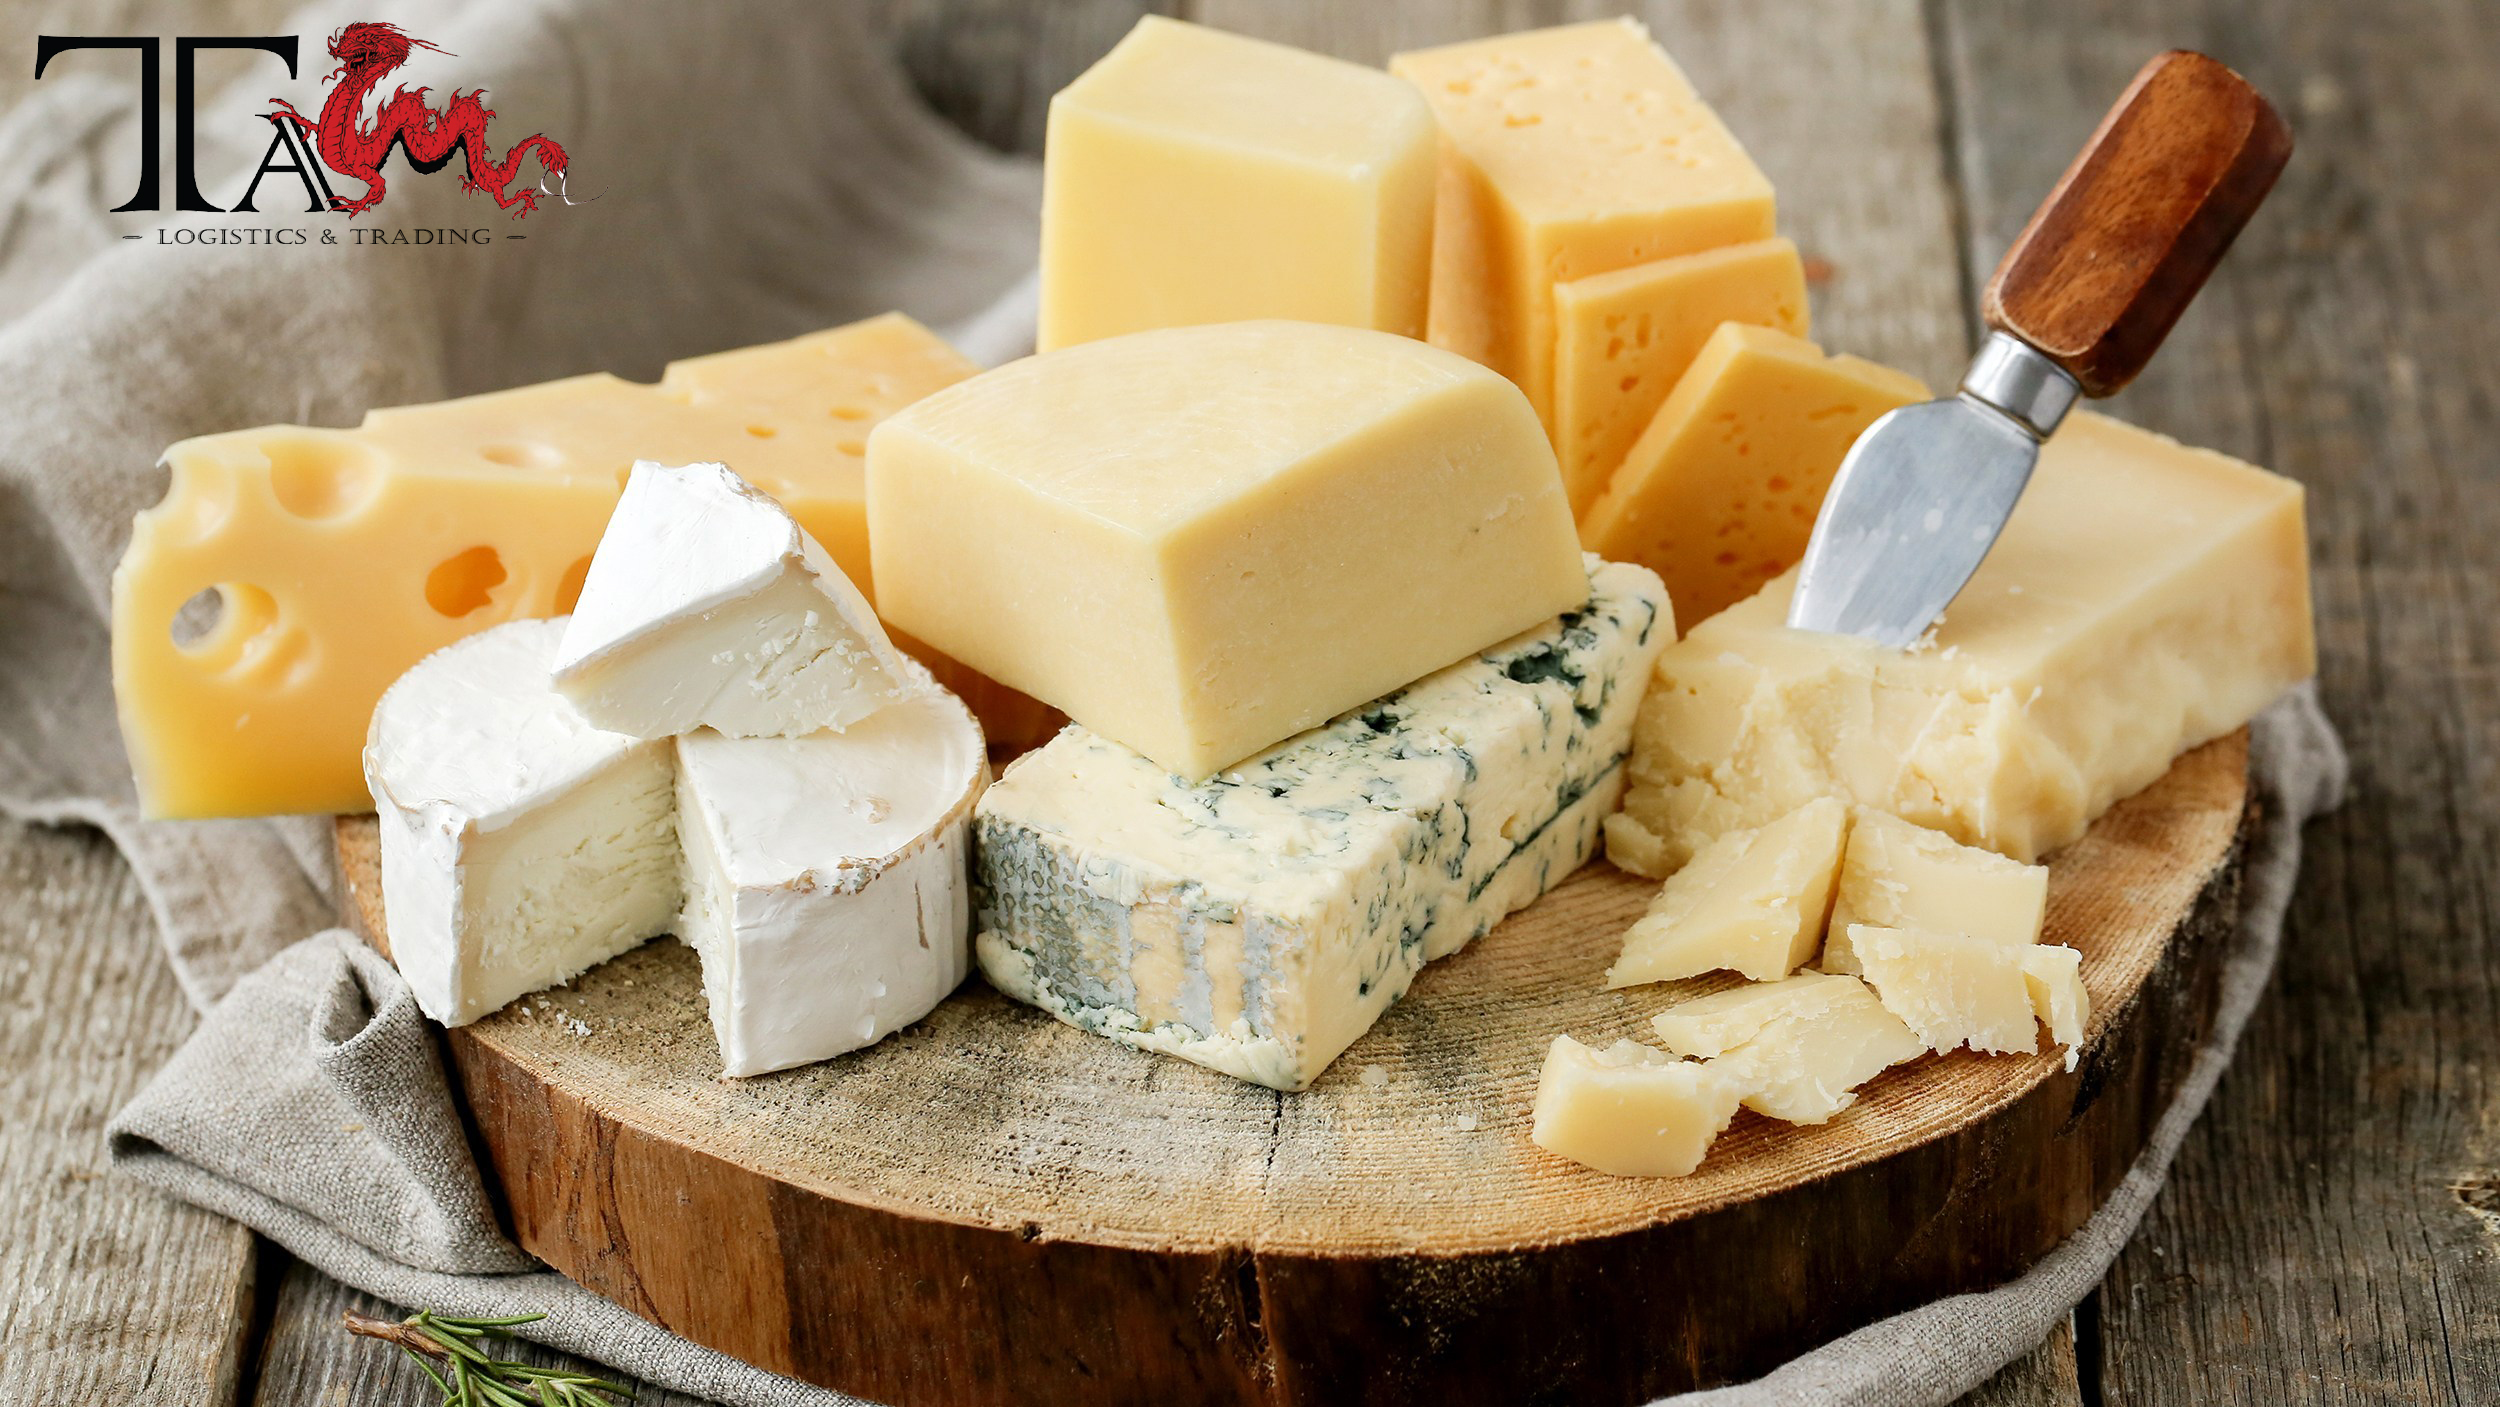 PROCESS OF PROCEDURE FOR IMPORTING BUTTER, CHEESE